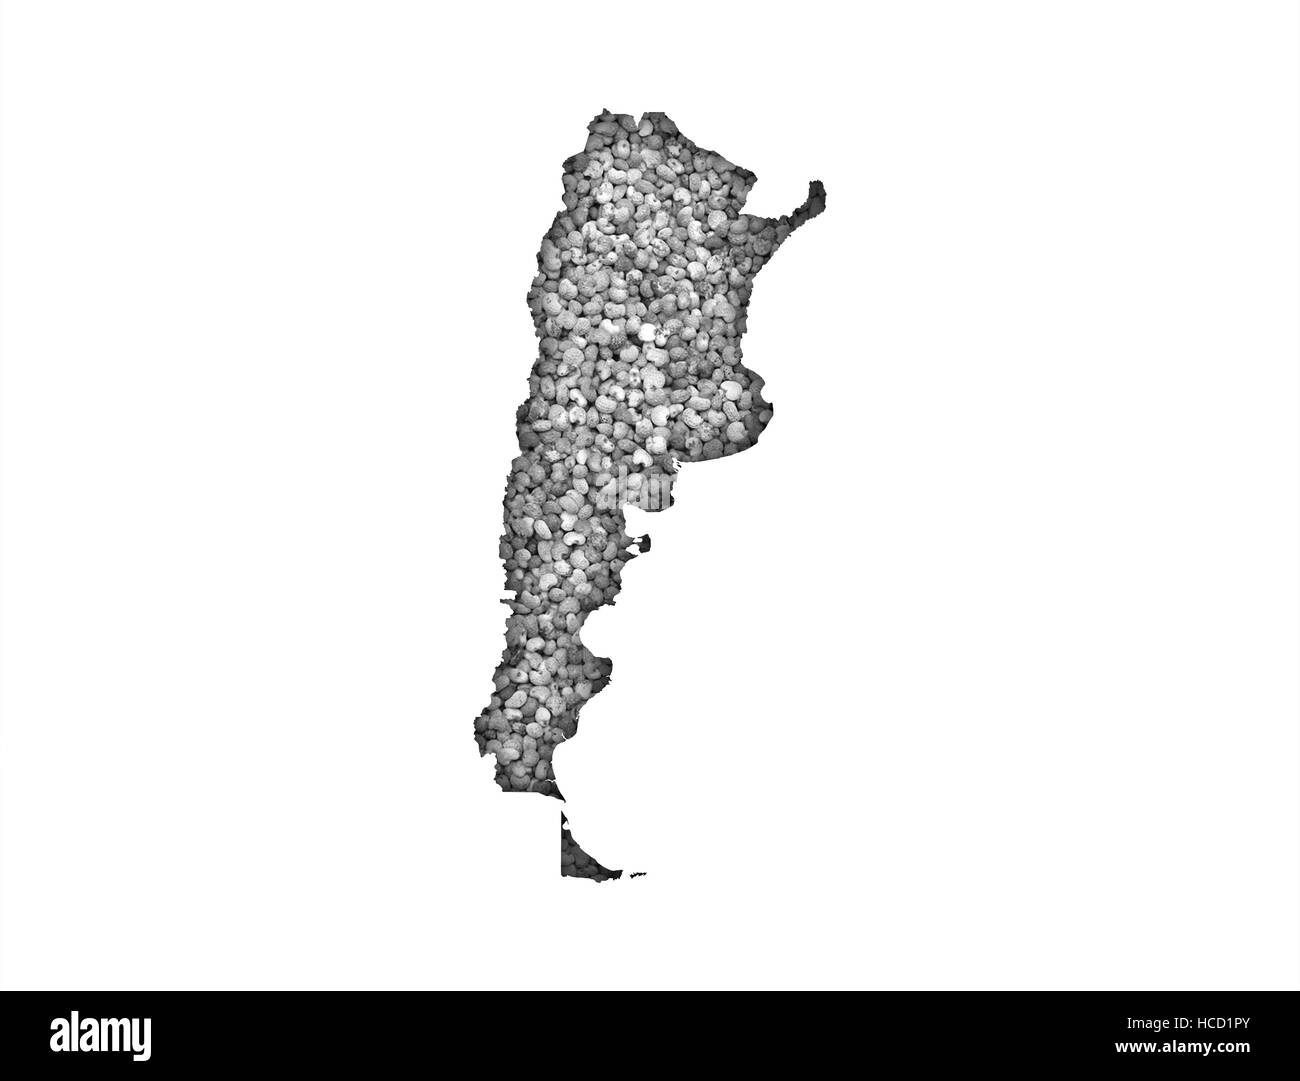 Map of Argentina on poppy seeds - Stock Image